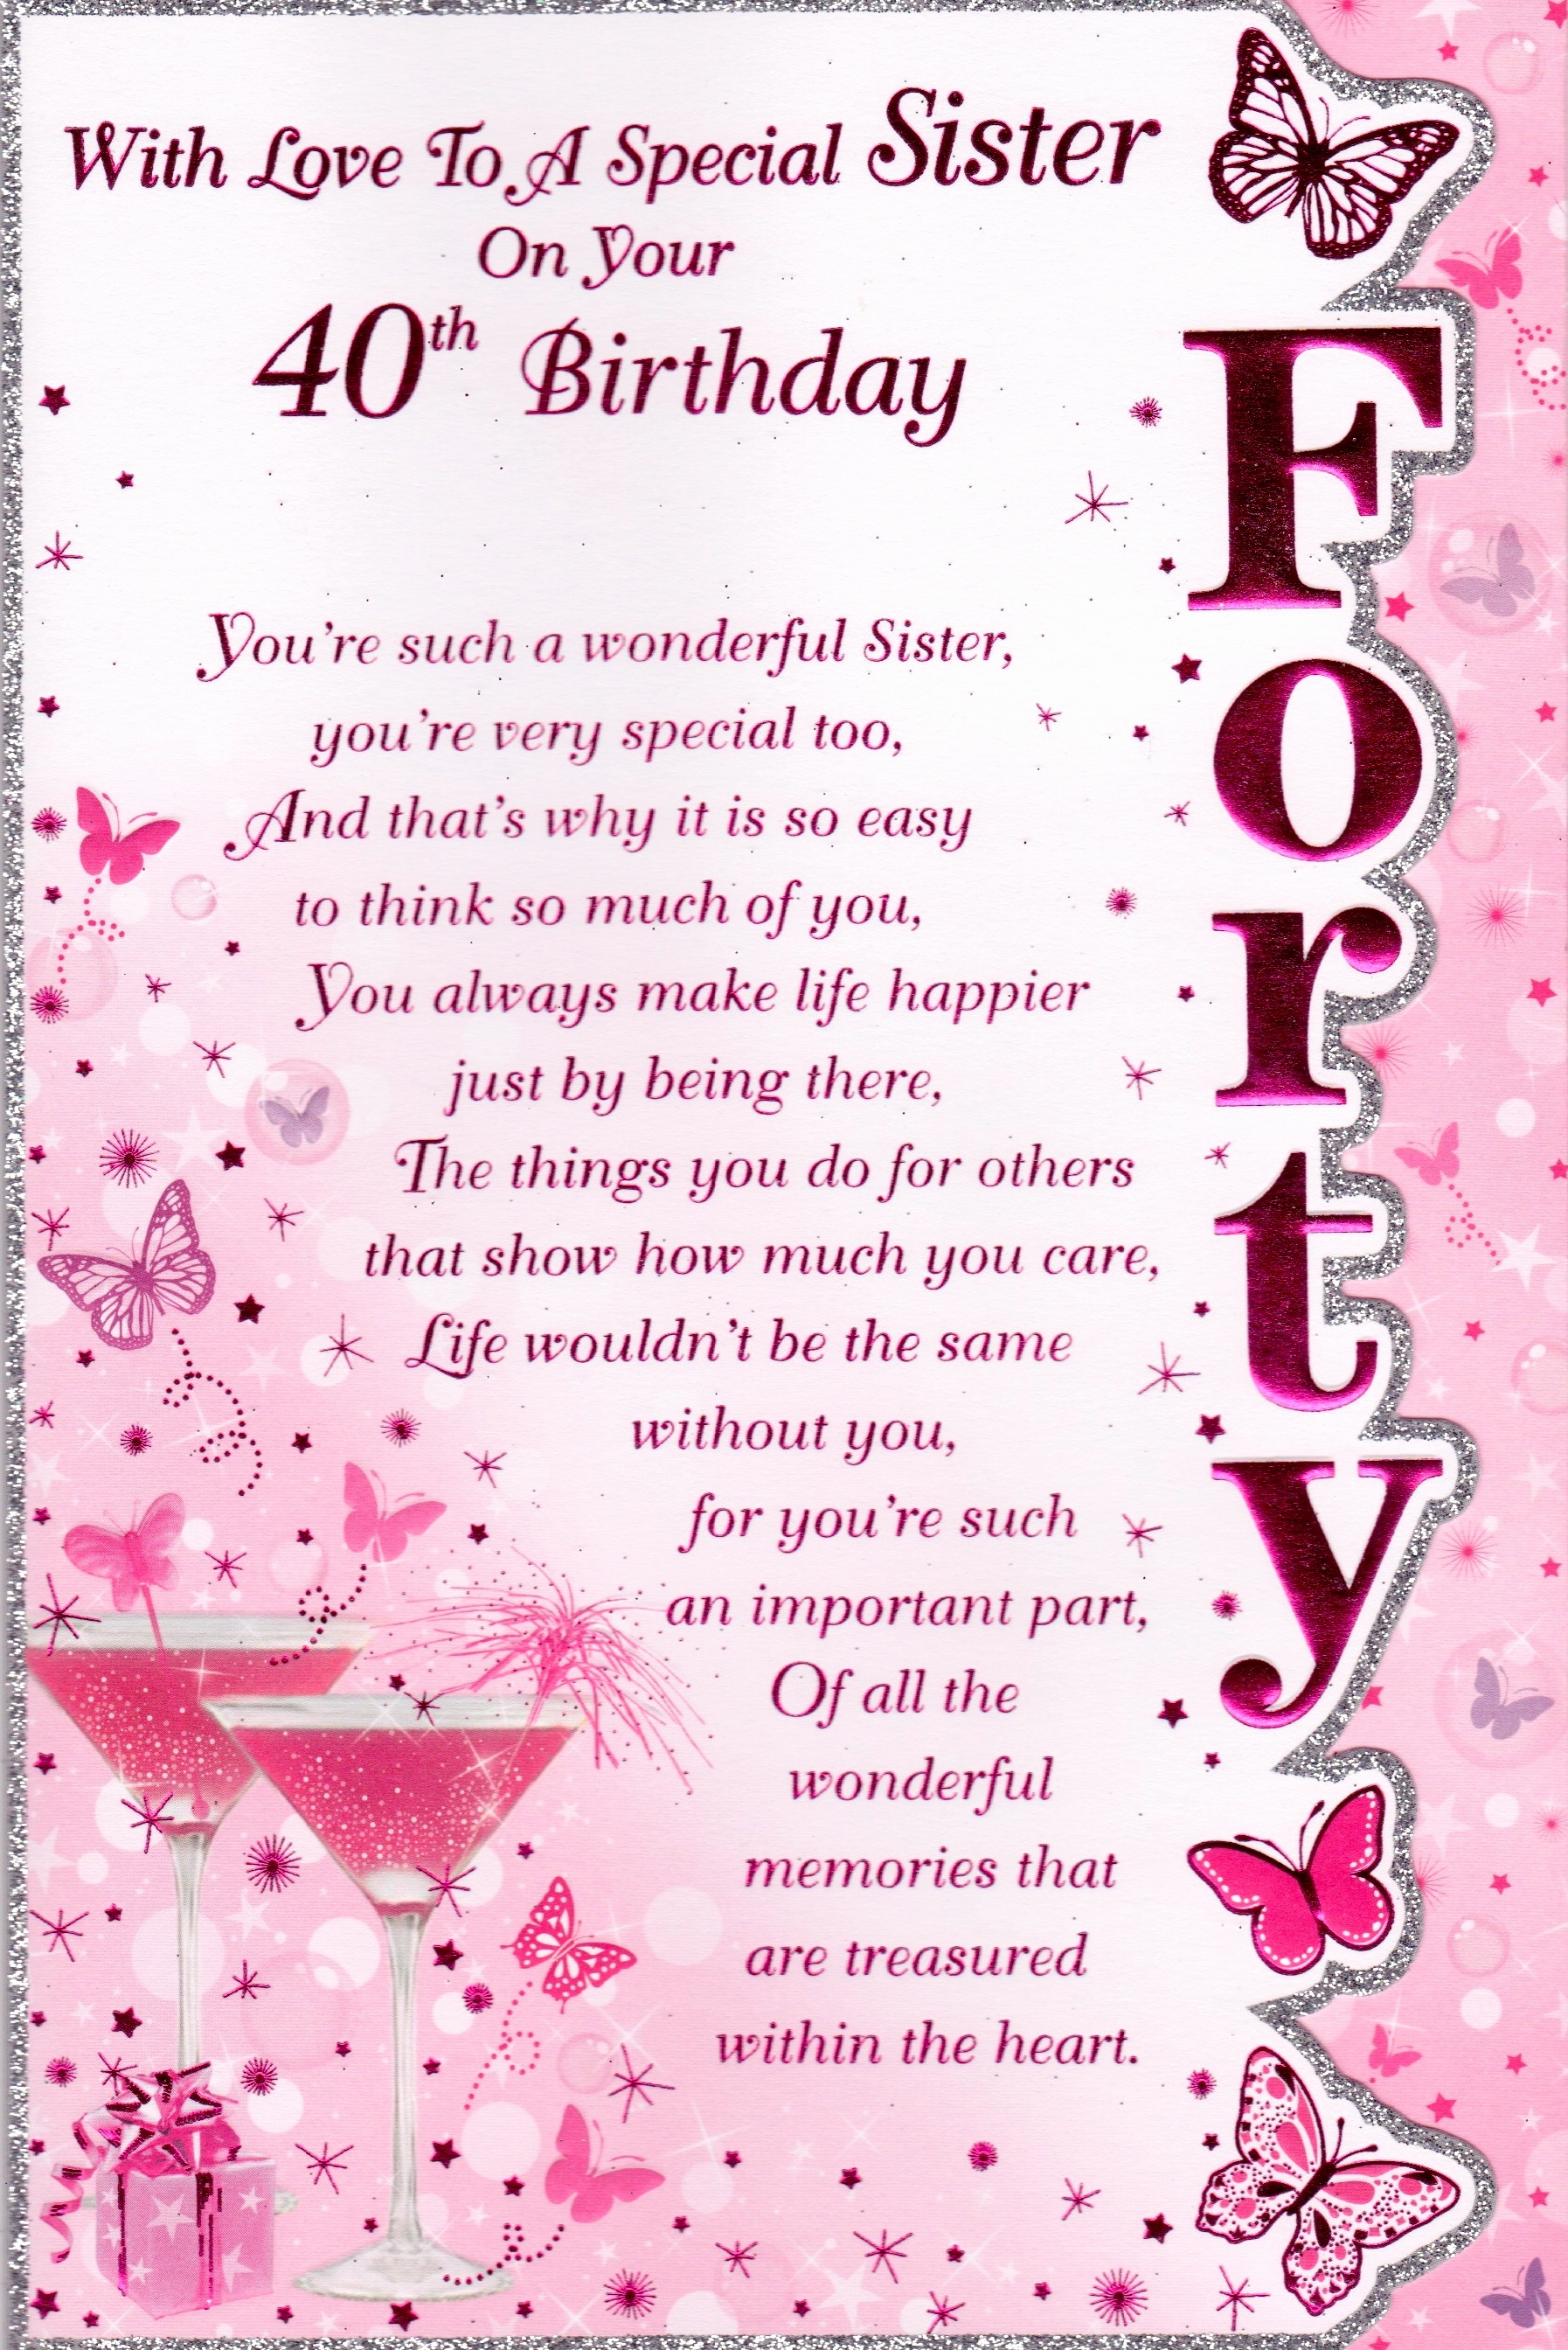 birthday card messages for sister funny ; sister-birthday-card-messages-beautiful-image-result-for-sisters-40th-birthday-funny-pinterest-of-sister-birthday-card-messages